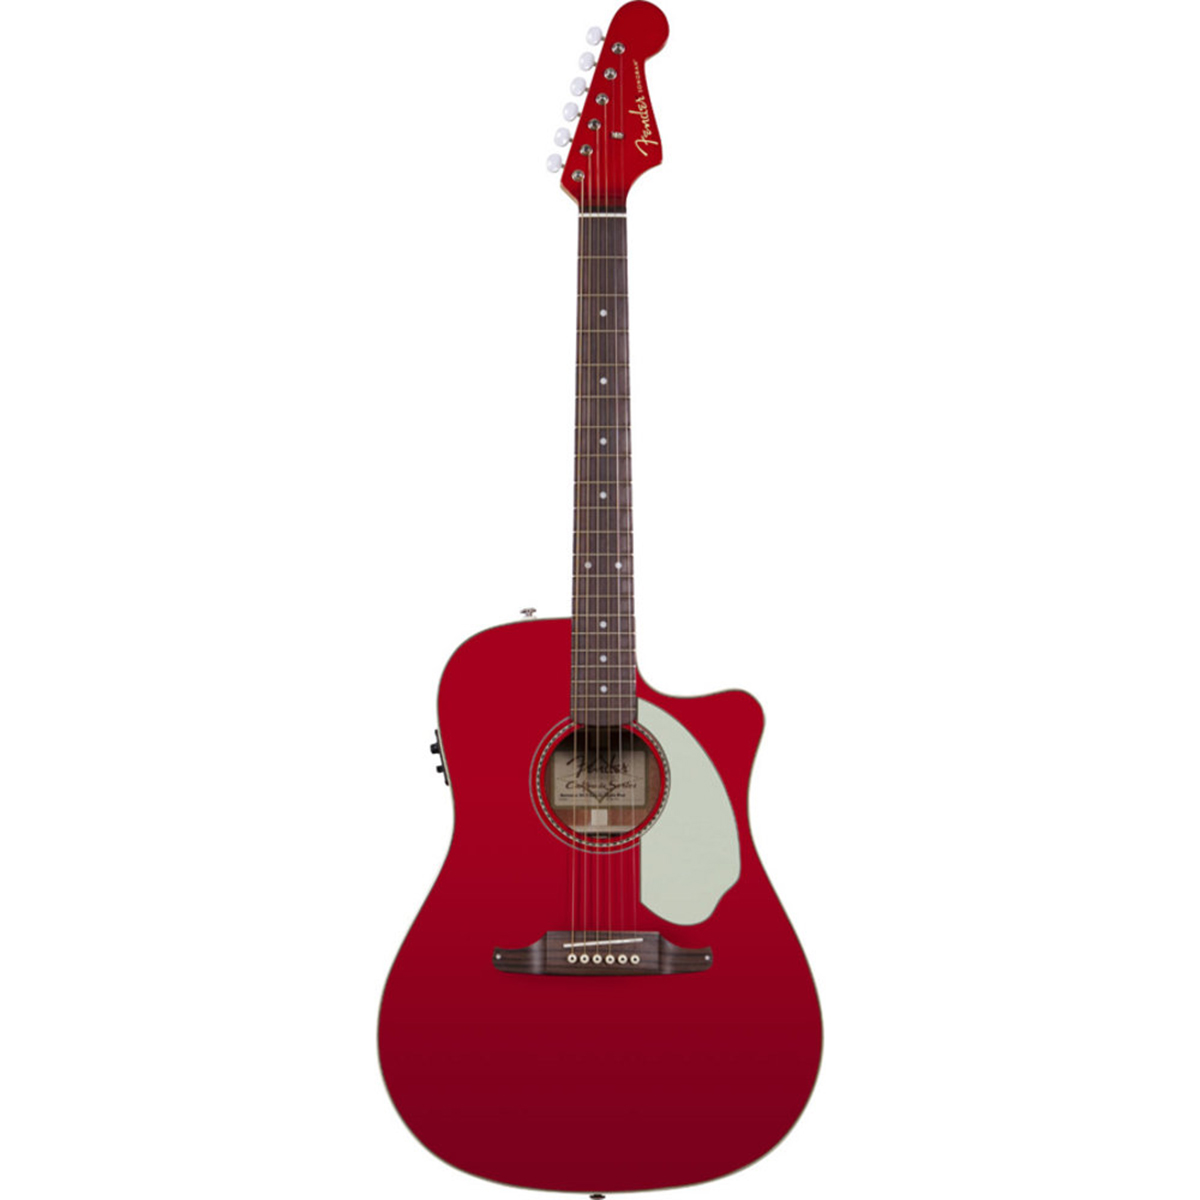 Fender - Sonoran SCE Candy Apple RedV2 California